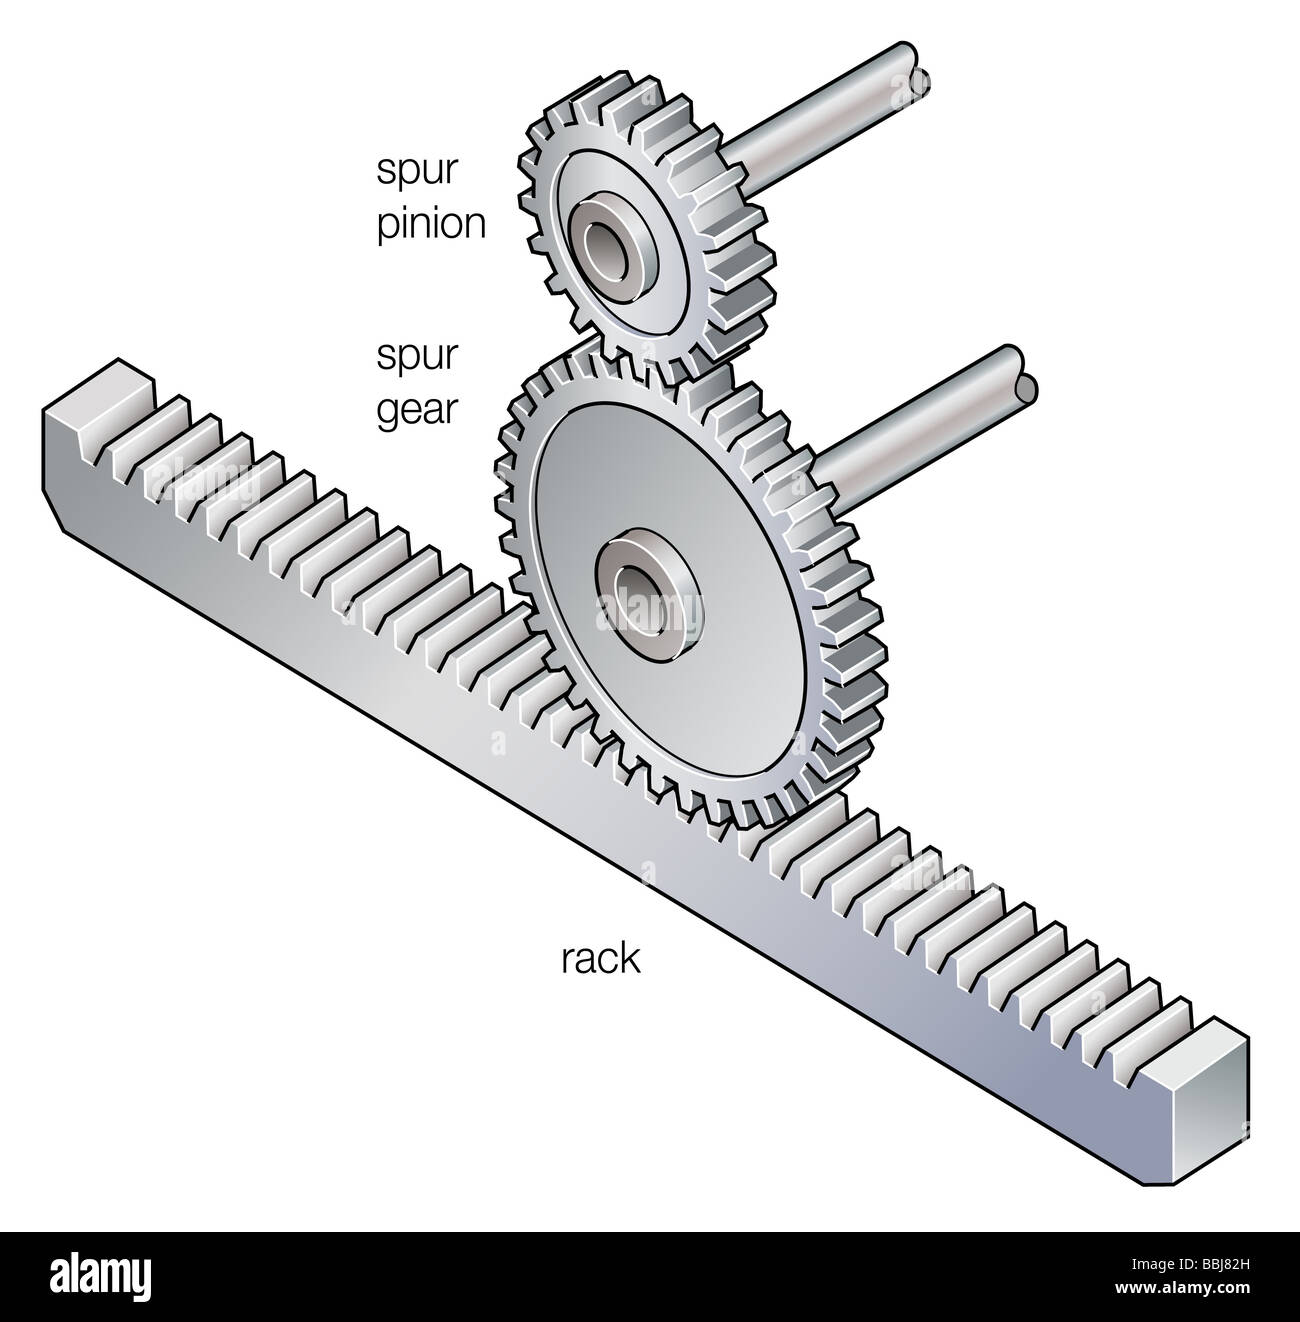 https www alamy com stock photo pair of spur gears and a gear rack 24373065 html